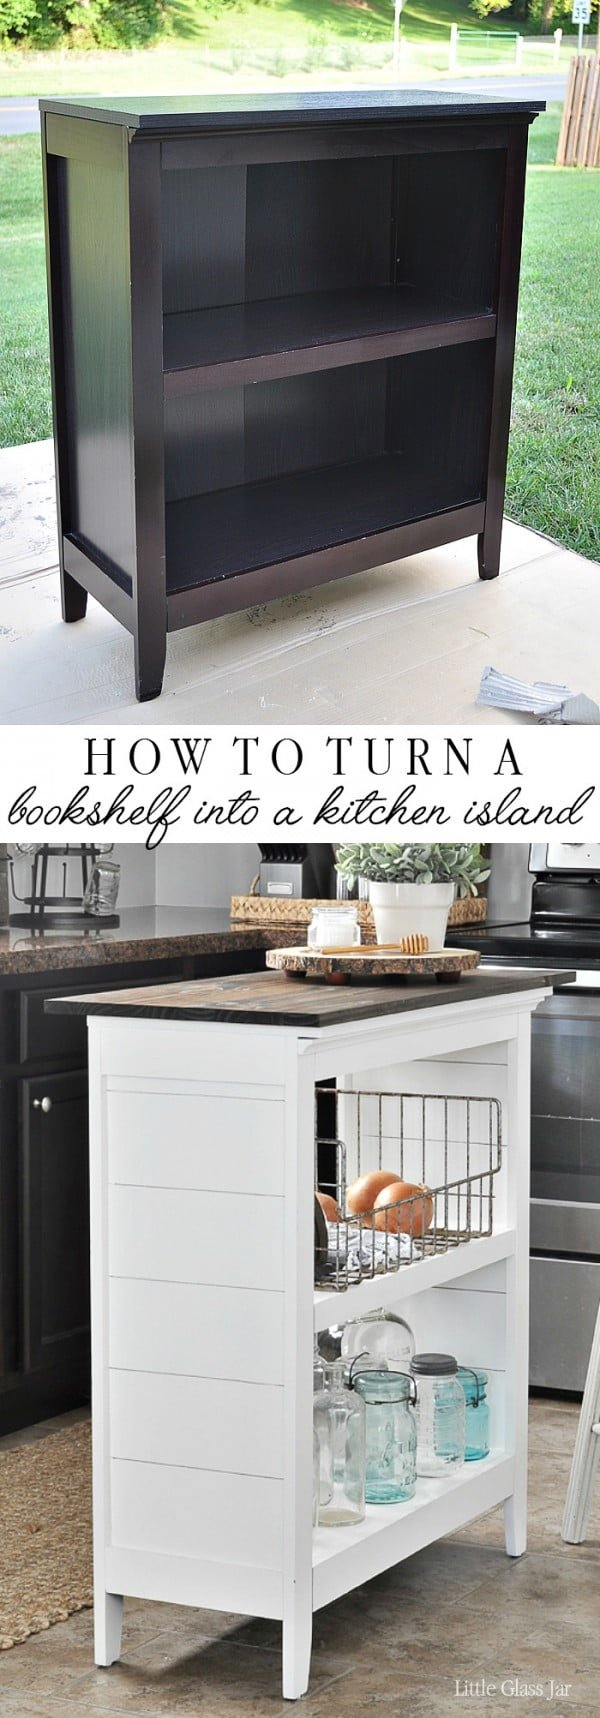 kitchen island from a bookshelf